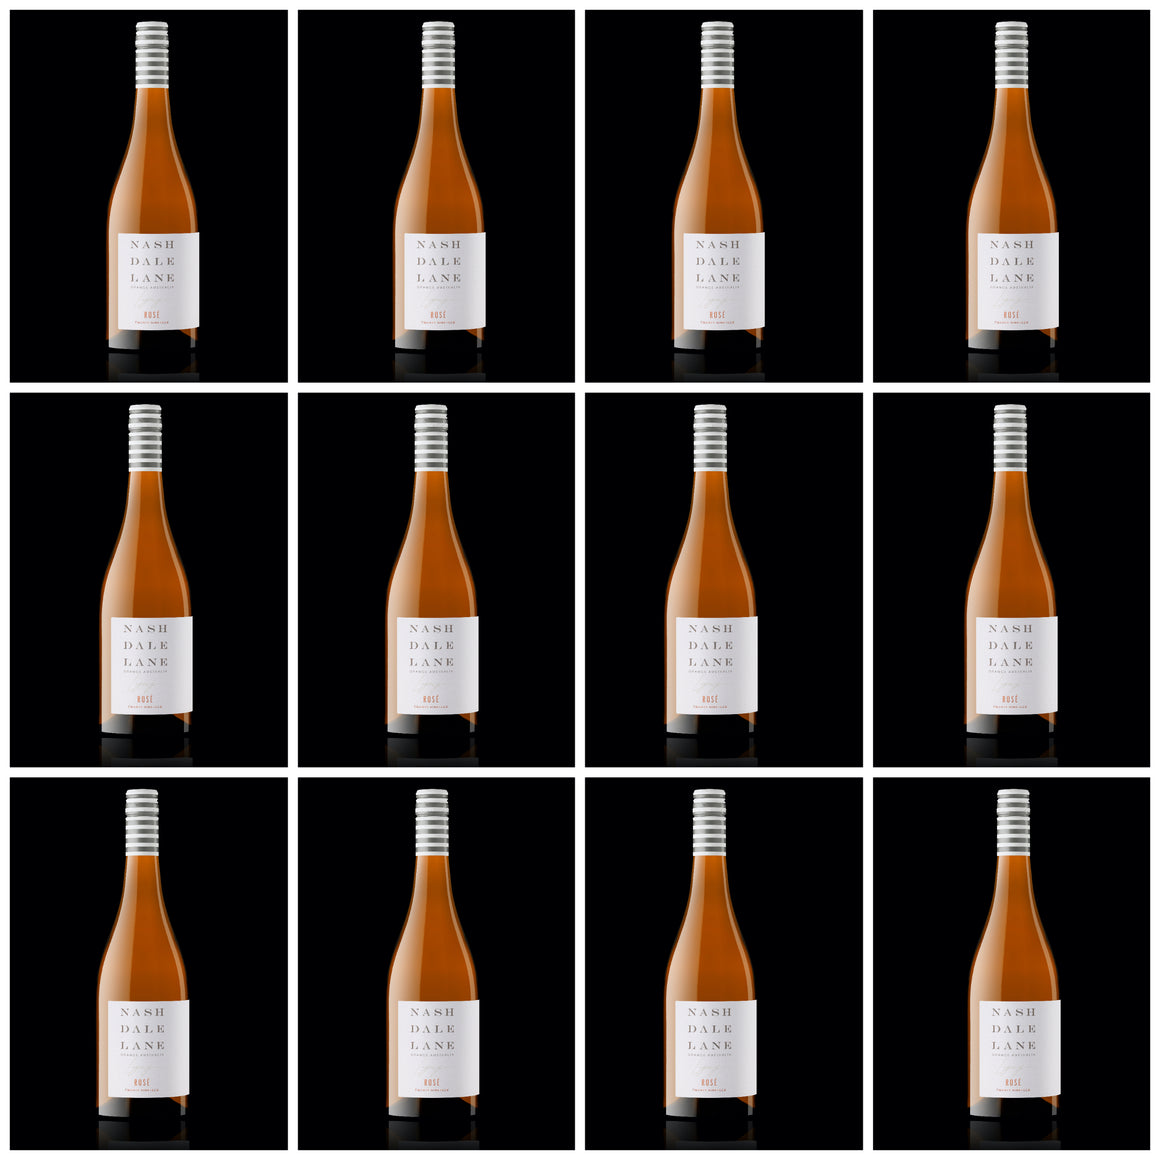 Nashdale Lane Legacy 2019 Rosé 12 bottle case